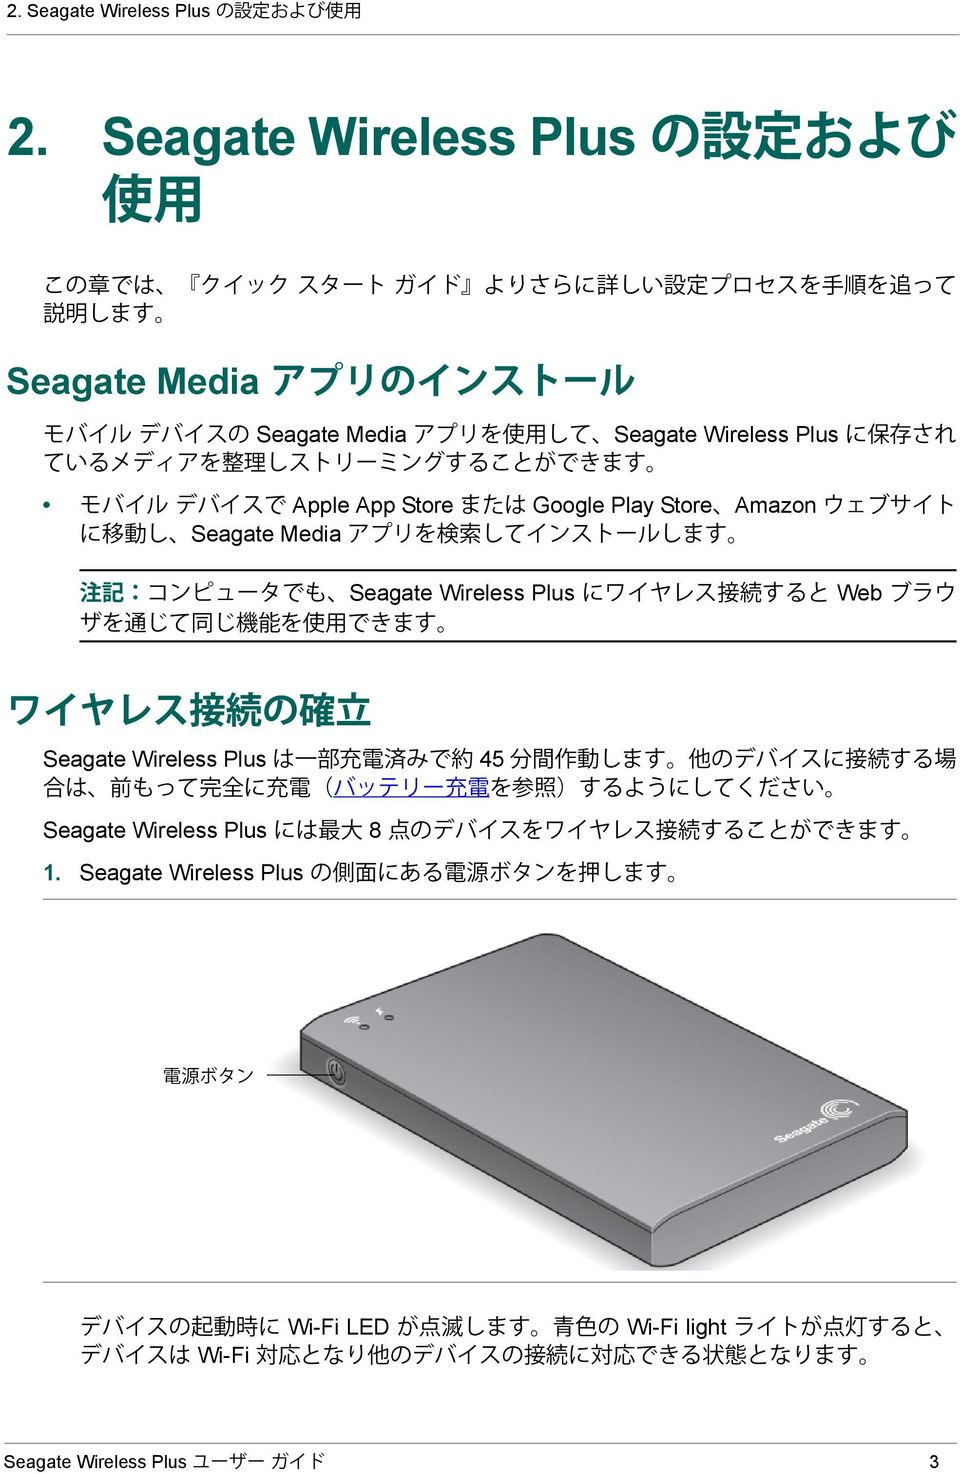 Apple App Store Google Play Store Amazon Seagate Media Seagate Wireless Plus